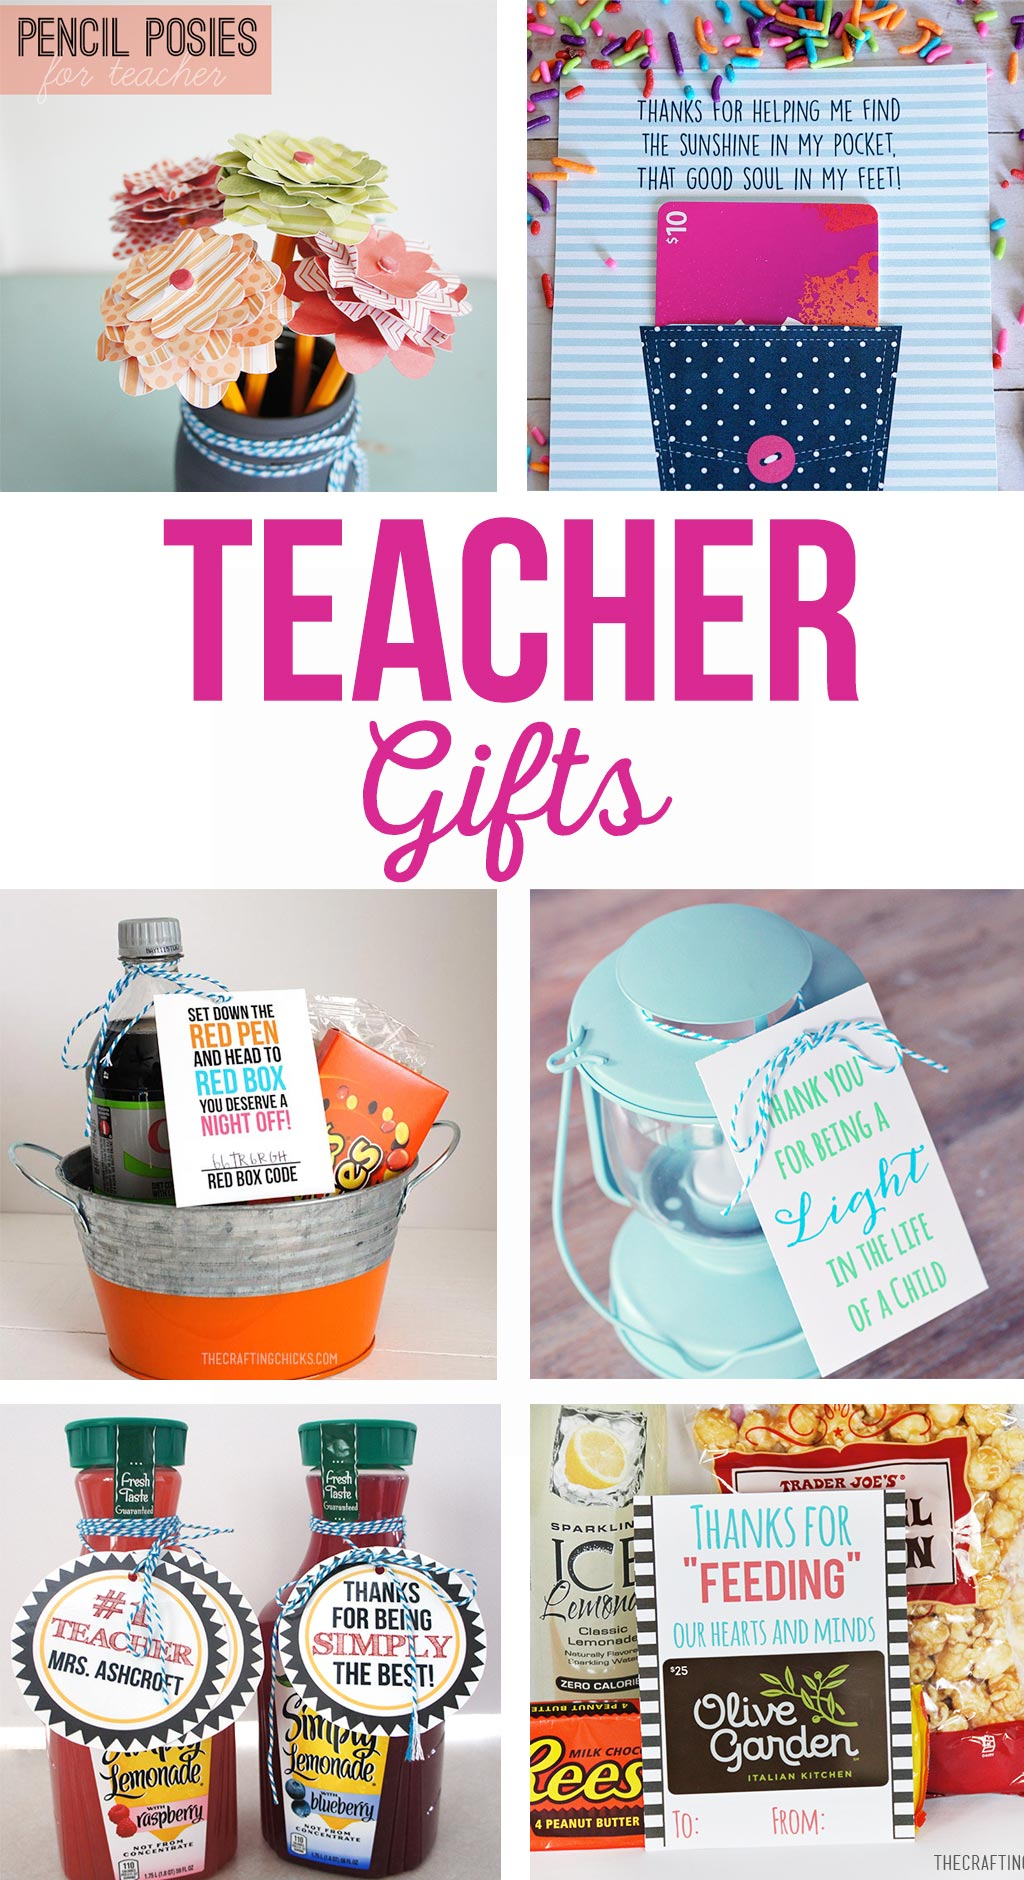 Fun and simple teacher gift ideas that won't break the bank. Free printable teacher gift tags. Gifts for teacher appreciation, end of the year, holidays and birthdays. #teachergifts #teacherappreciation #freeprintables